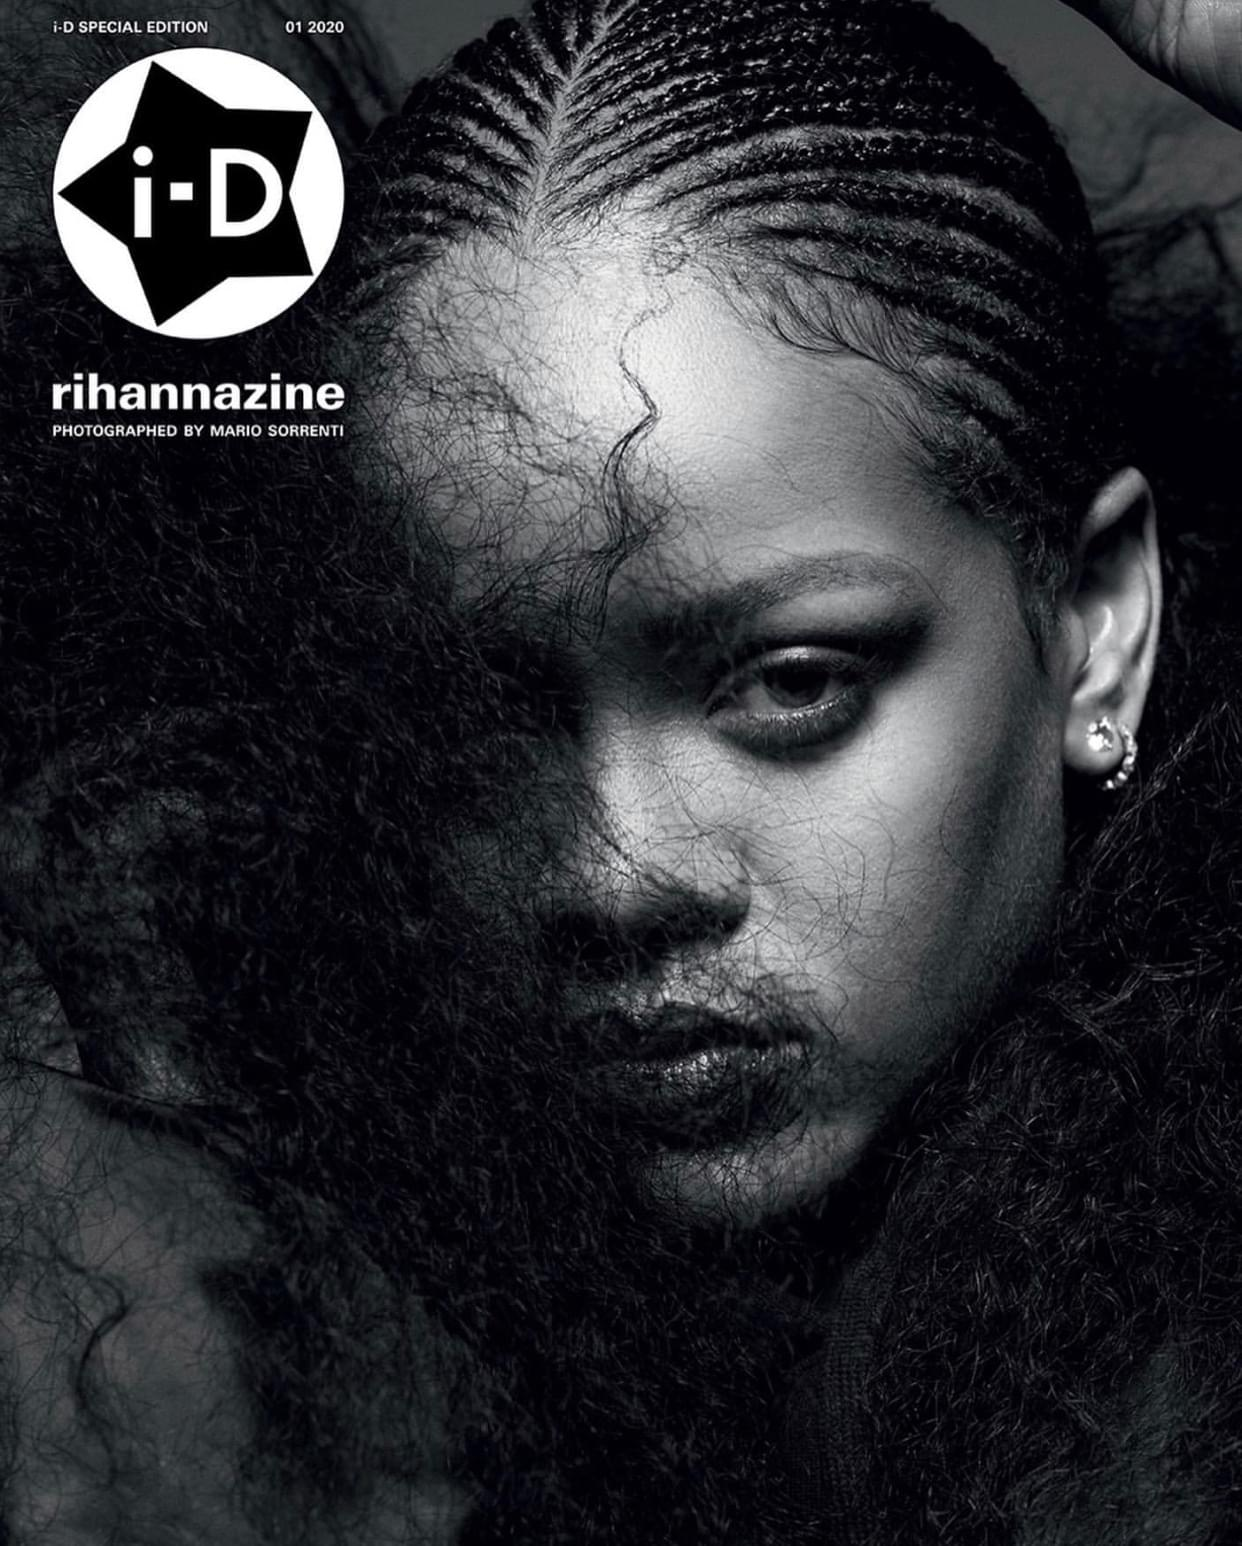 Rihanna and 'i-D' Collab For Their 'Rihannazine' Issue